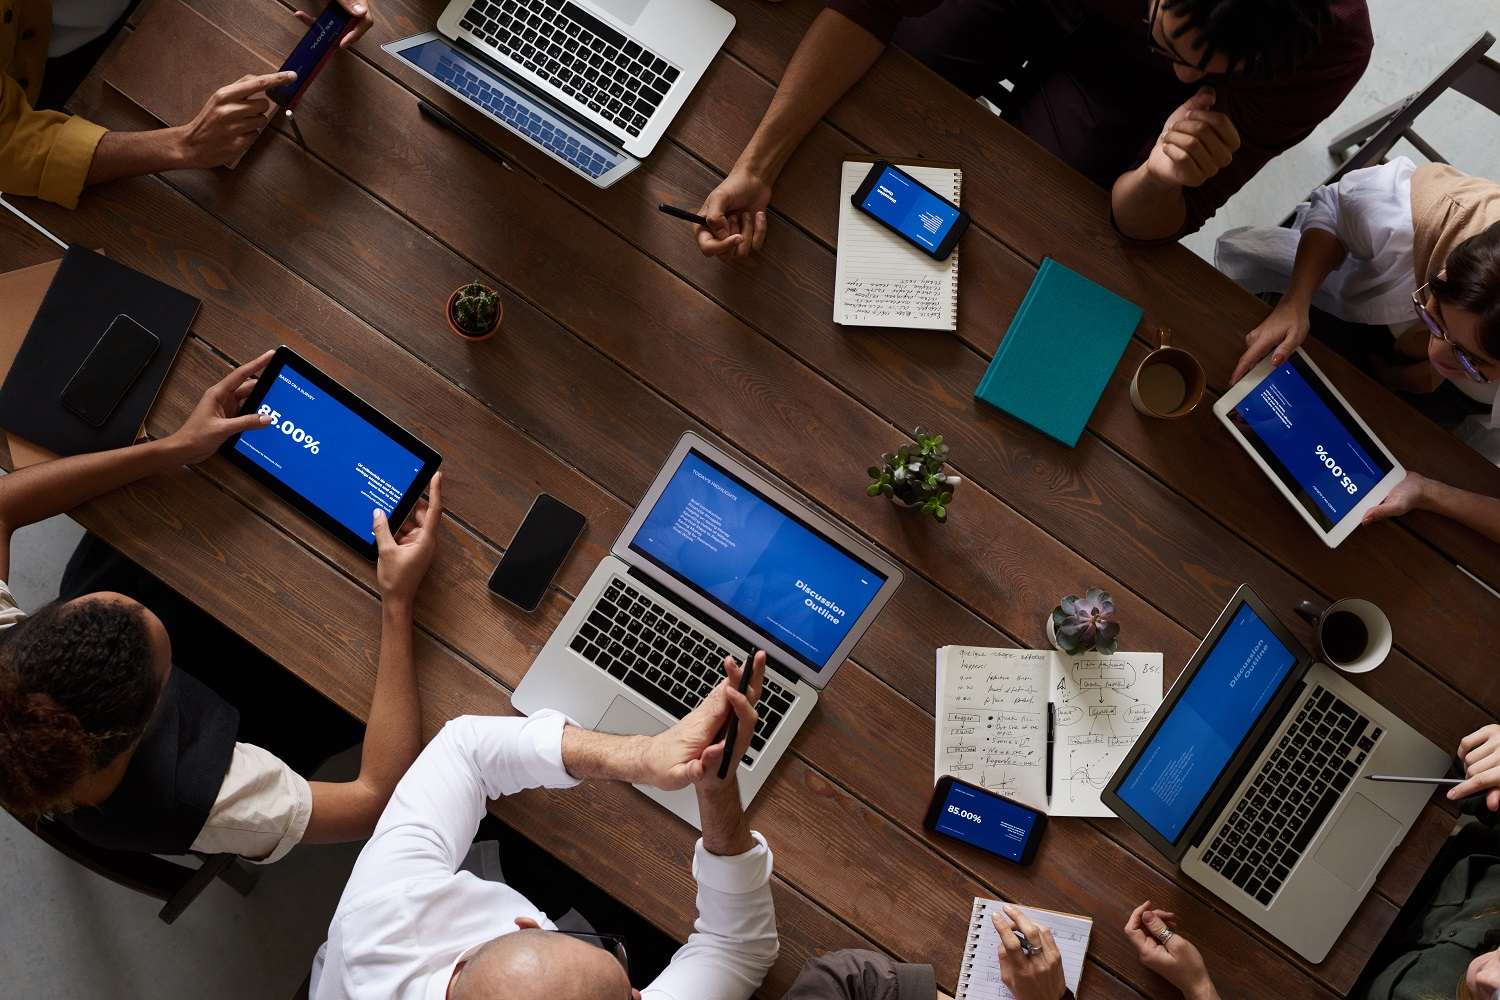 Business people working with laptop computers and tablets at a conference table